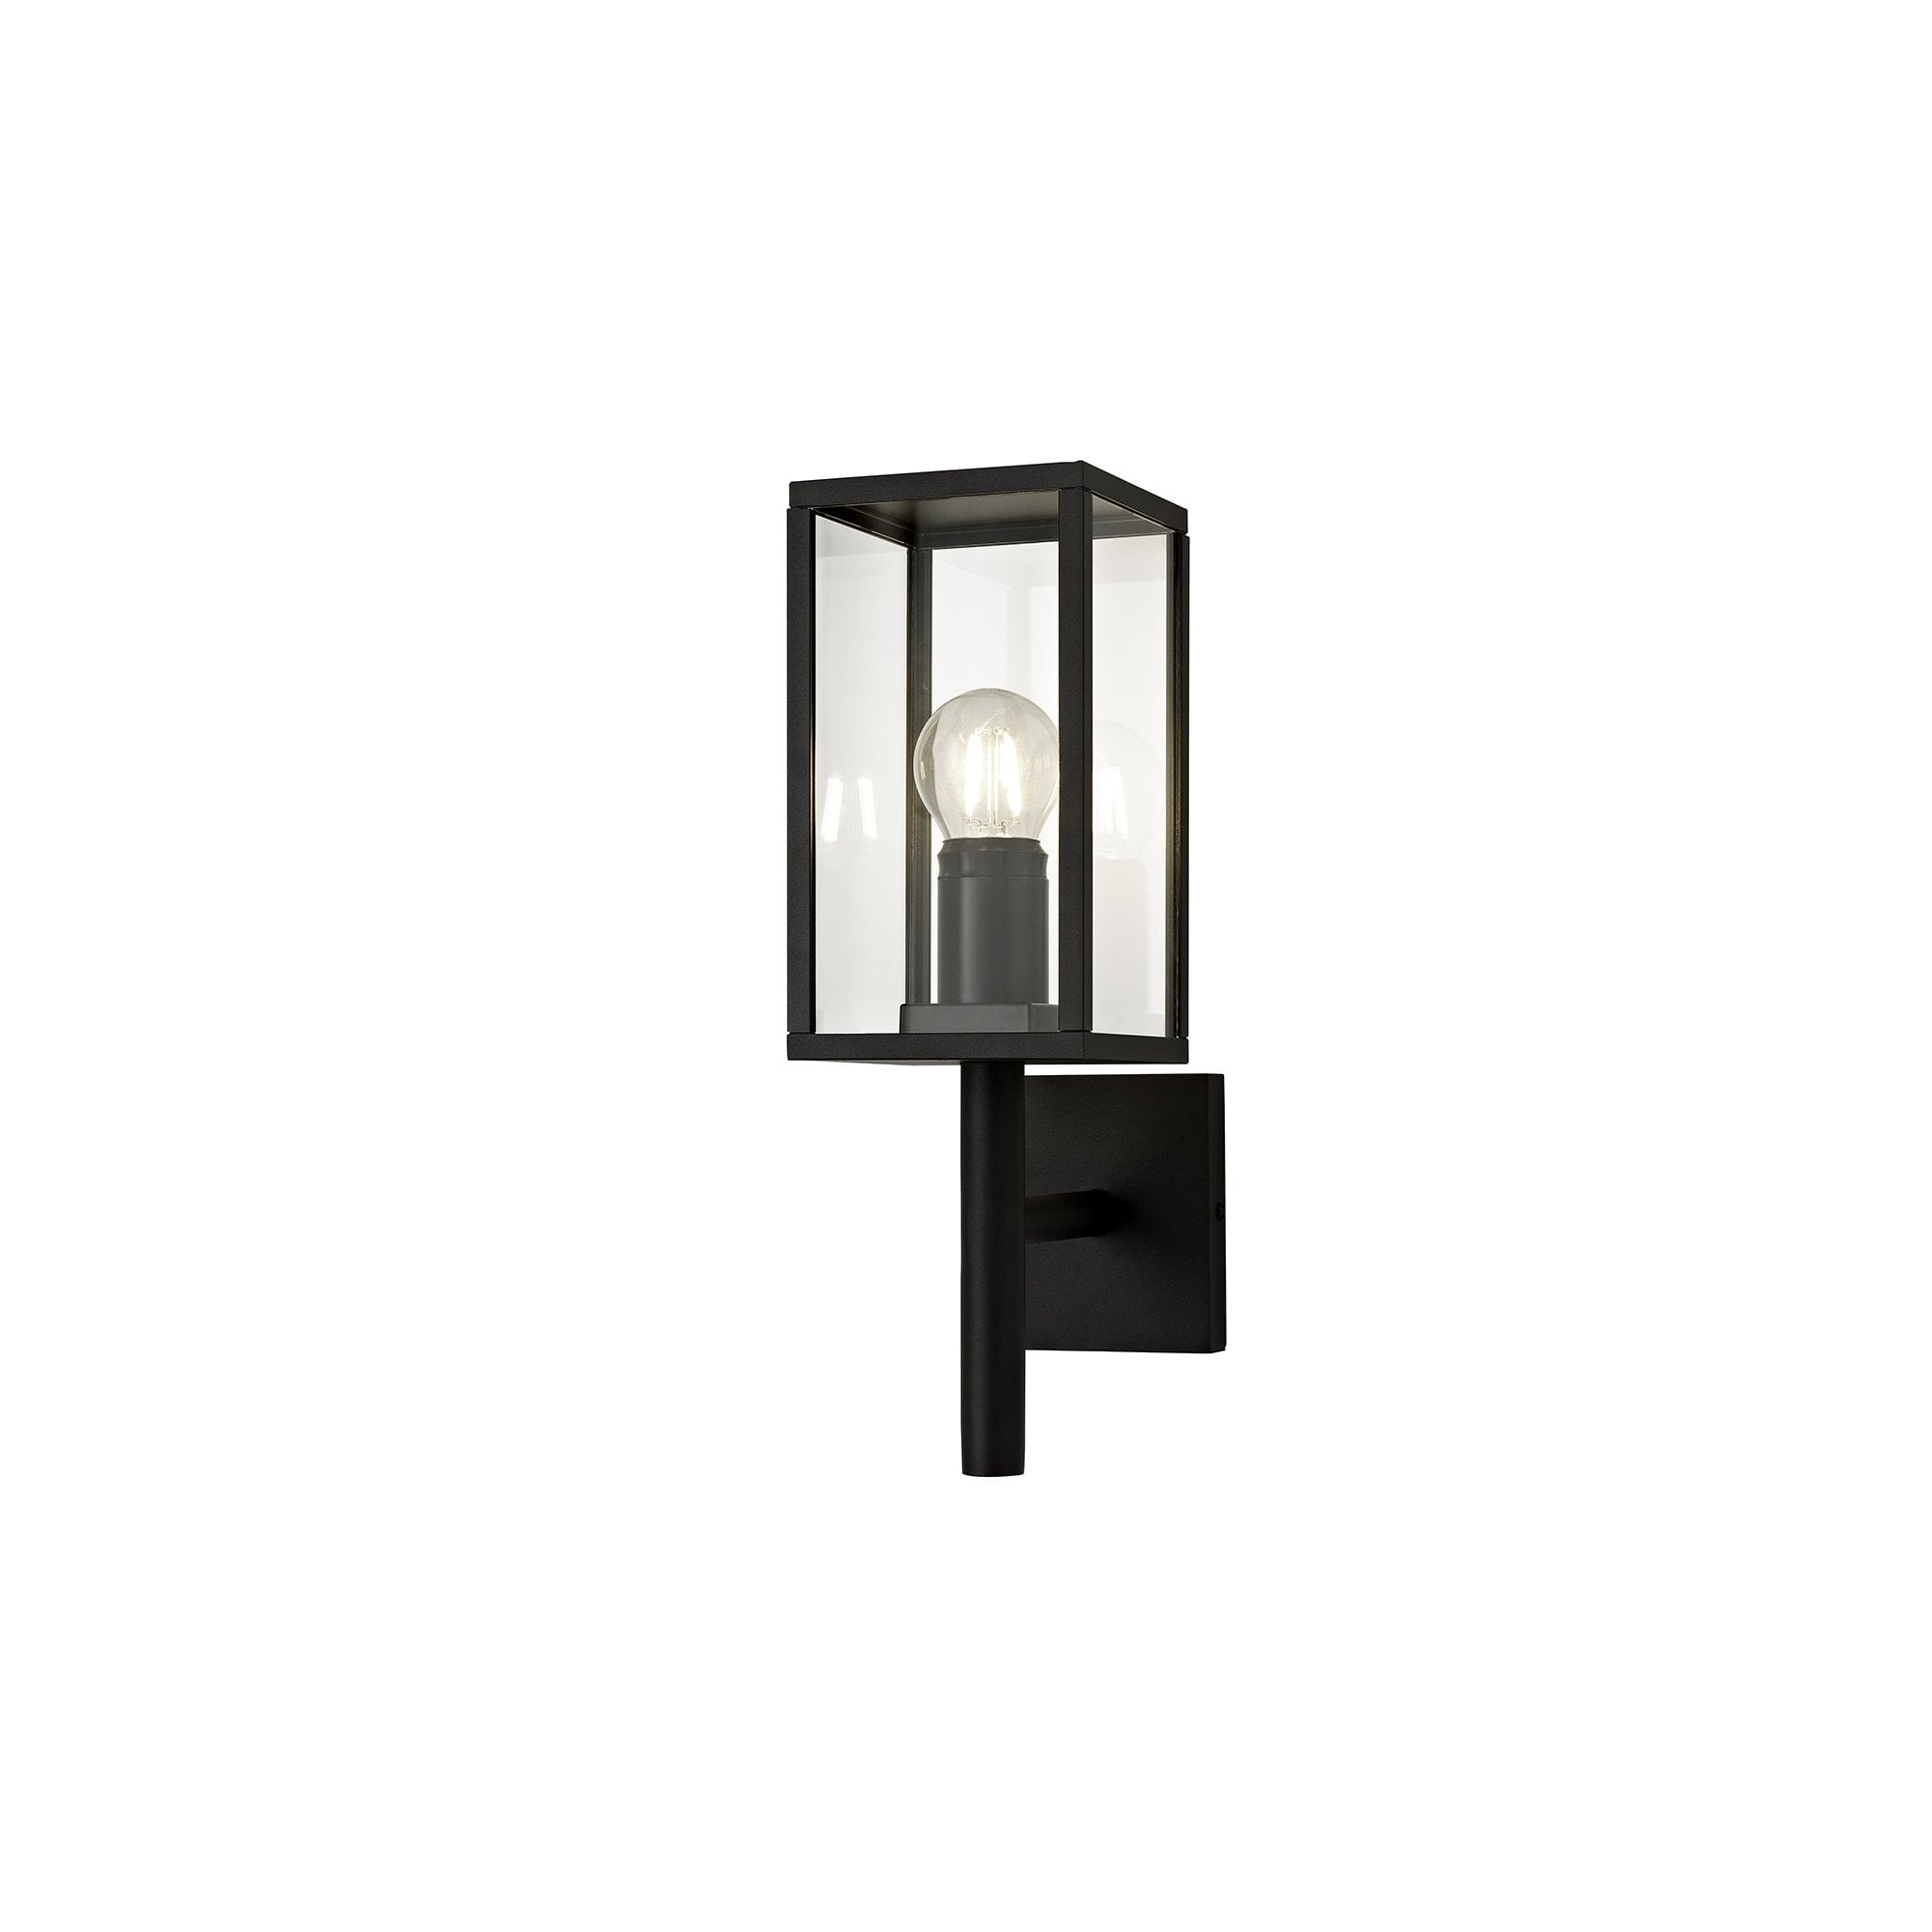 Outdoor Graphite Black Box Lantern Wall Light With Clear Glass